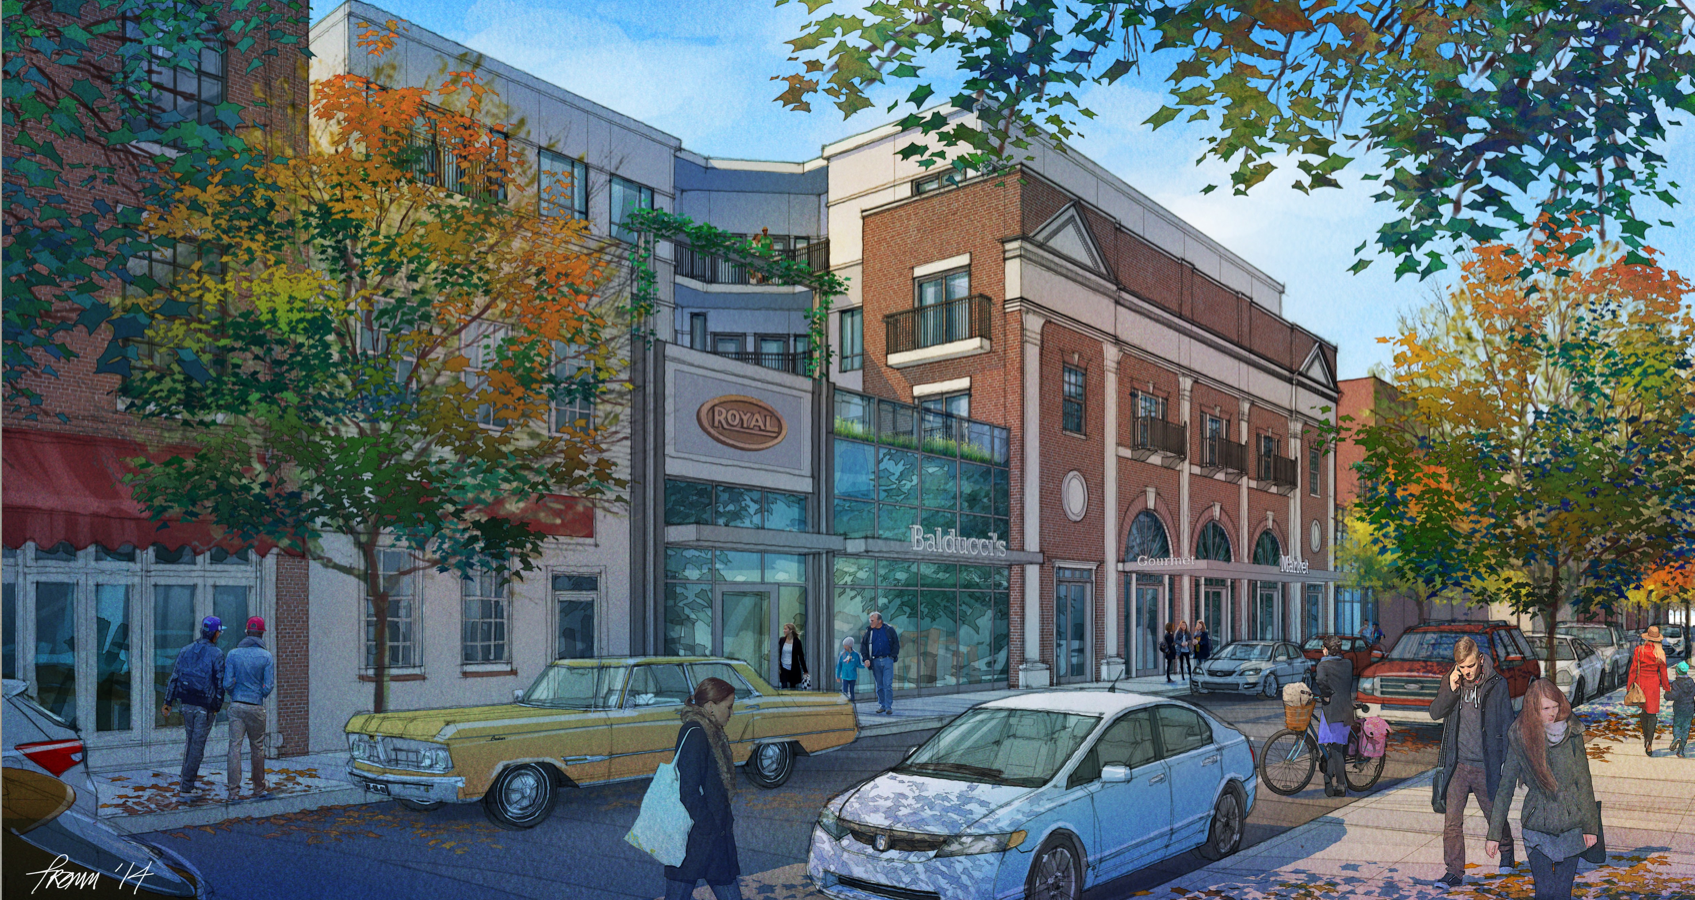 Rendering of redevelopment incorporating historic South Street facade of Royal Theater into mixed-use development | J Davis Architects